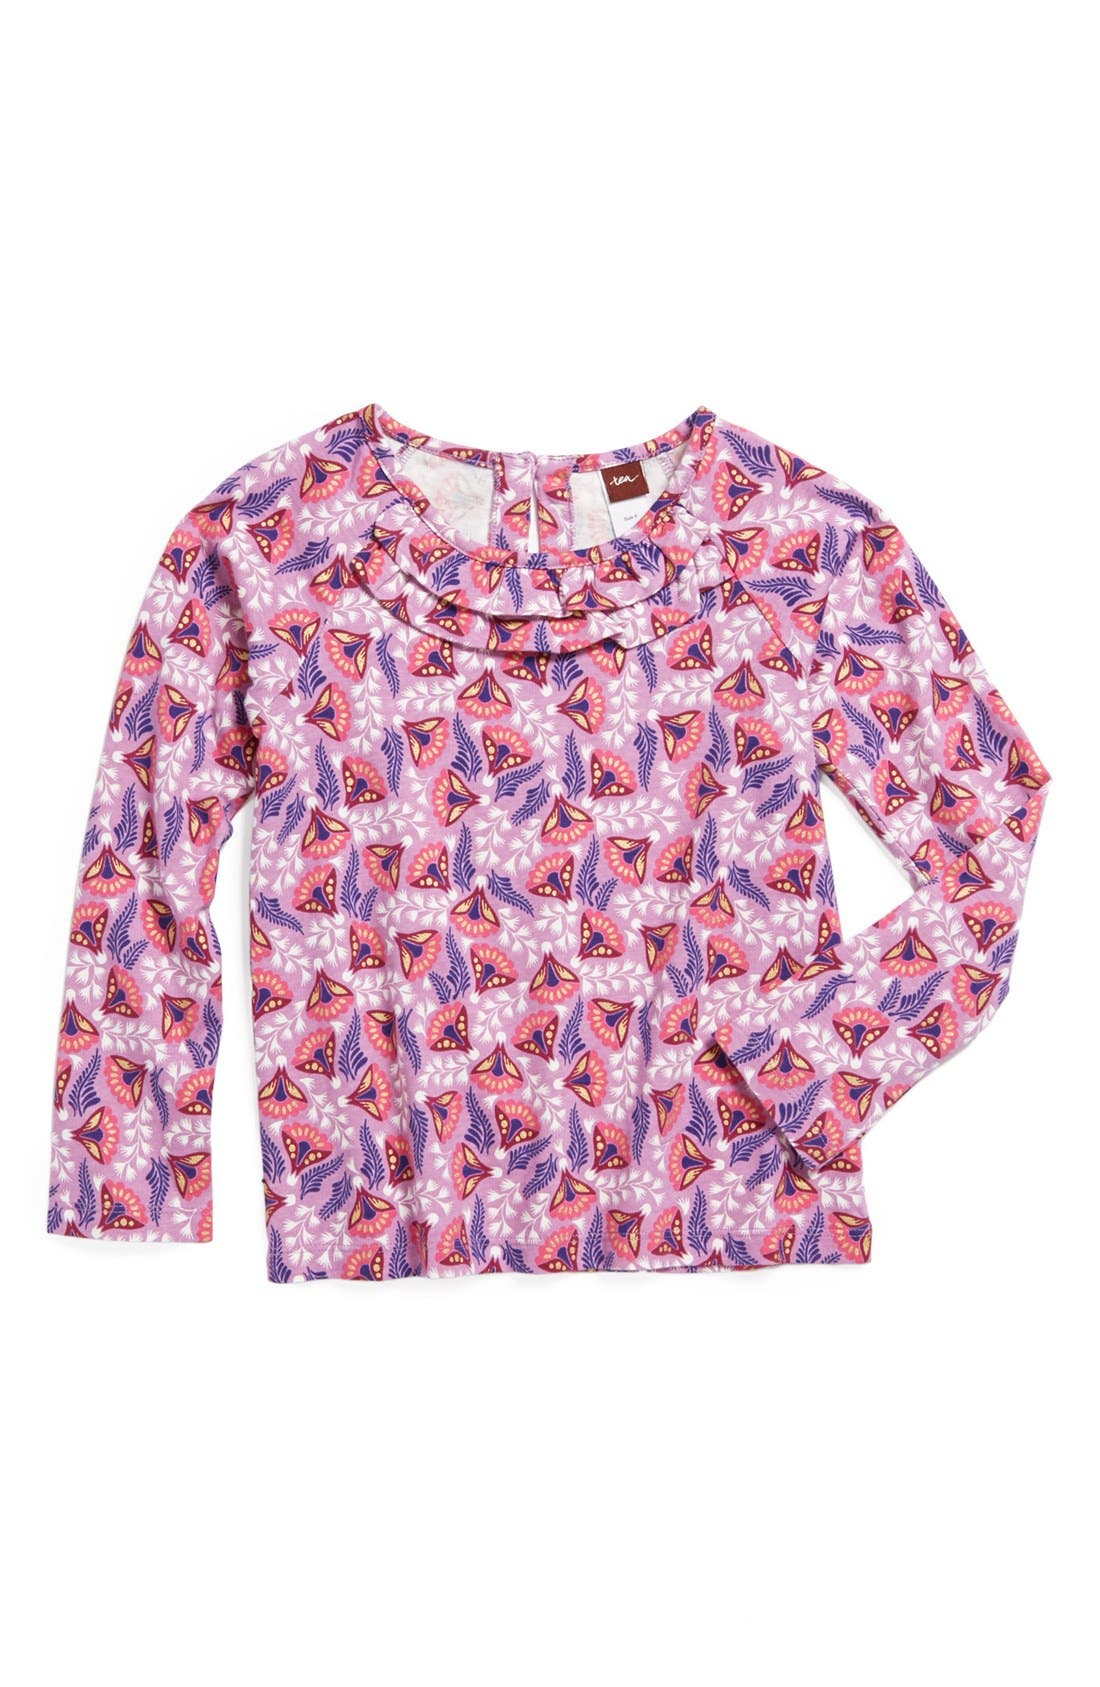 Alternate Image 1 Selected - Tea Collection 'Sparkle Blossom' Ruffle Top (Toddler Girls, Little Girls & Big Girls)